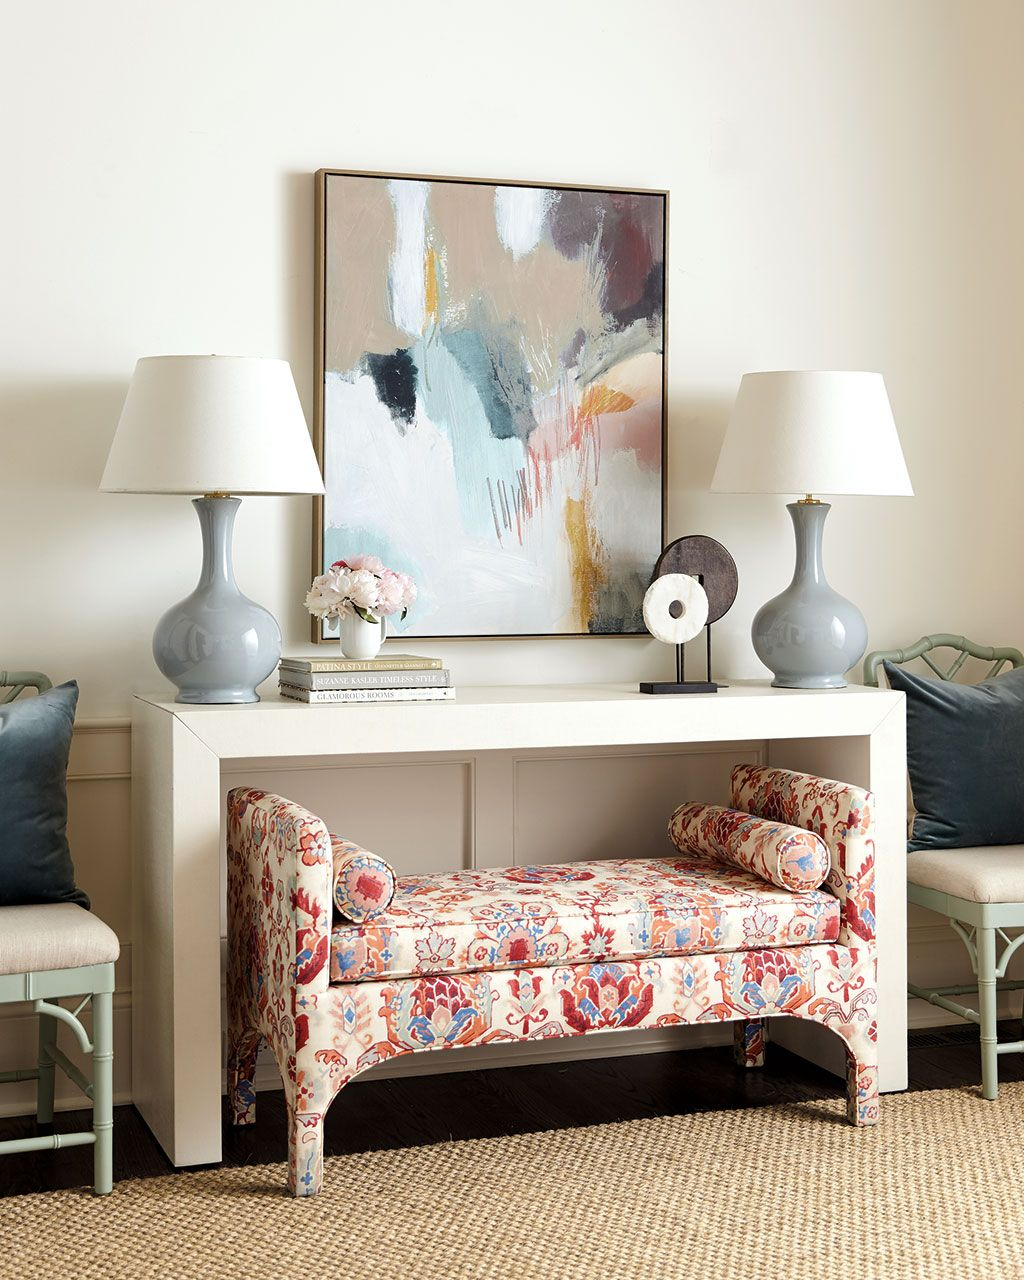 large abstract art print hung over a white console table | ballard